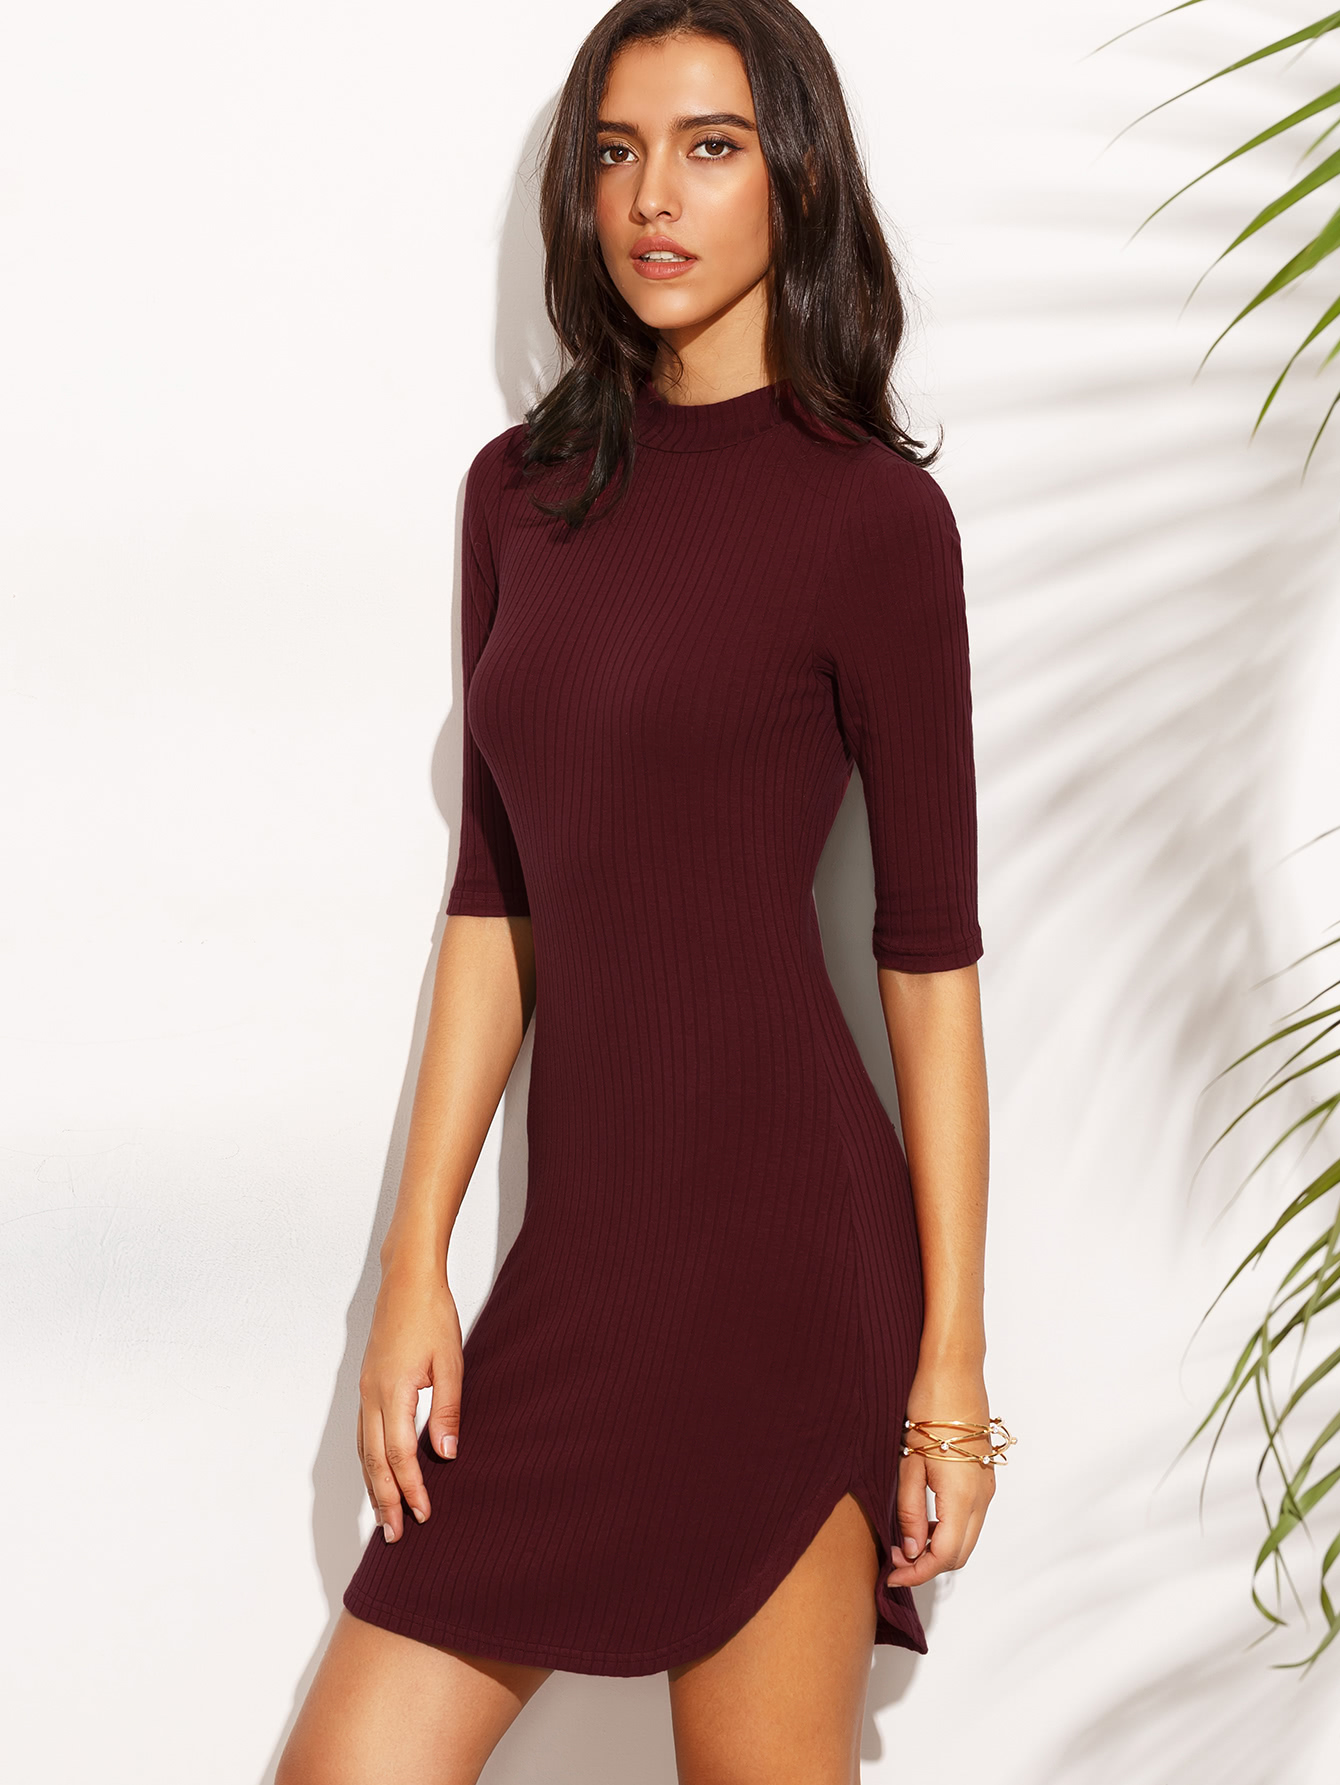 Dolphin Hem Fitted Ribbed Dress dress160805721